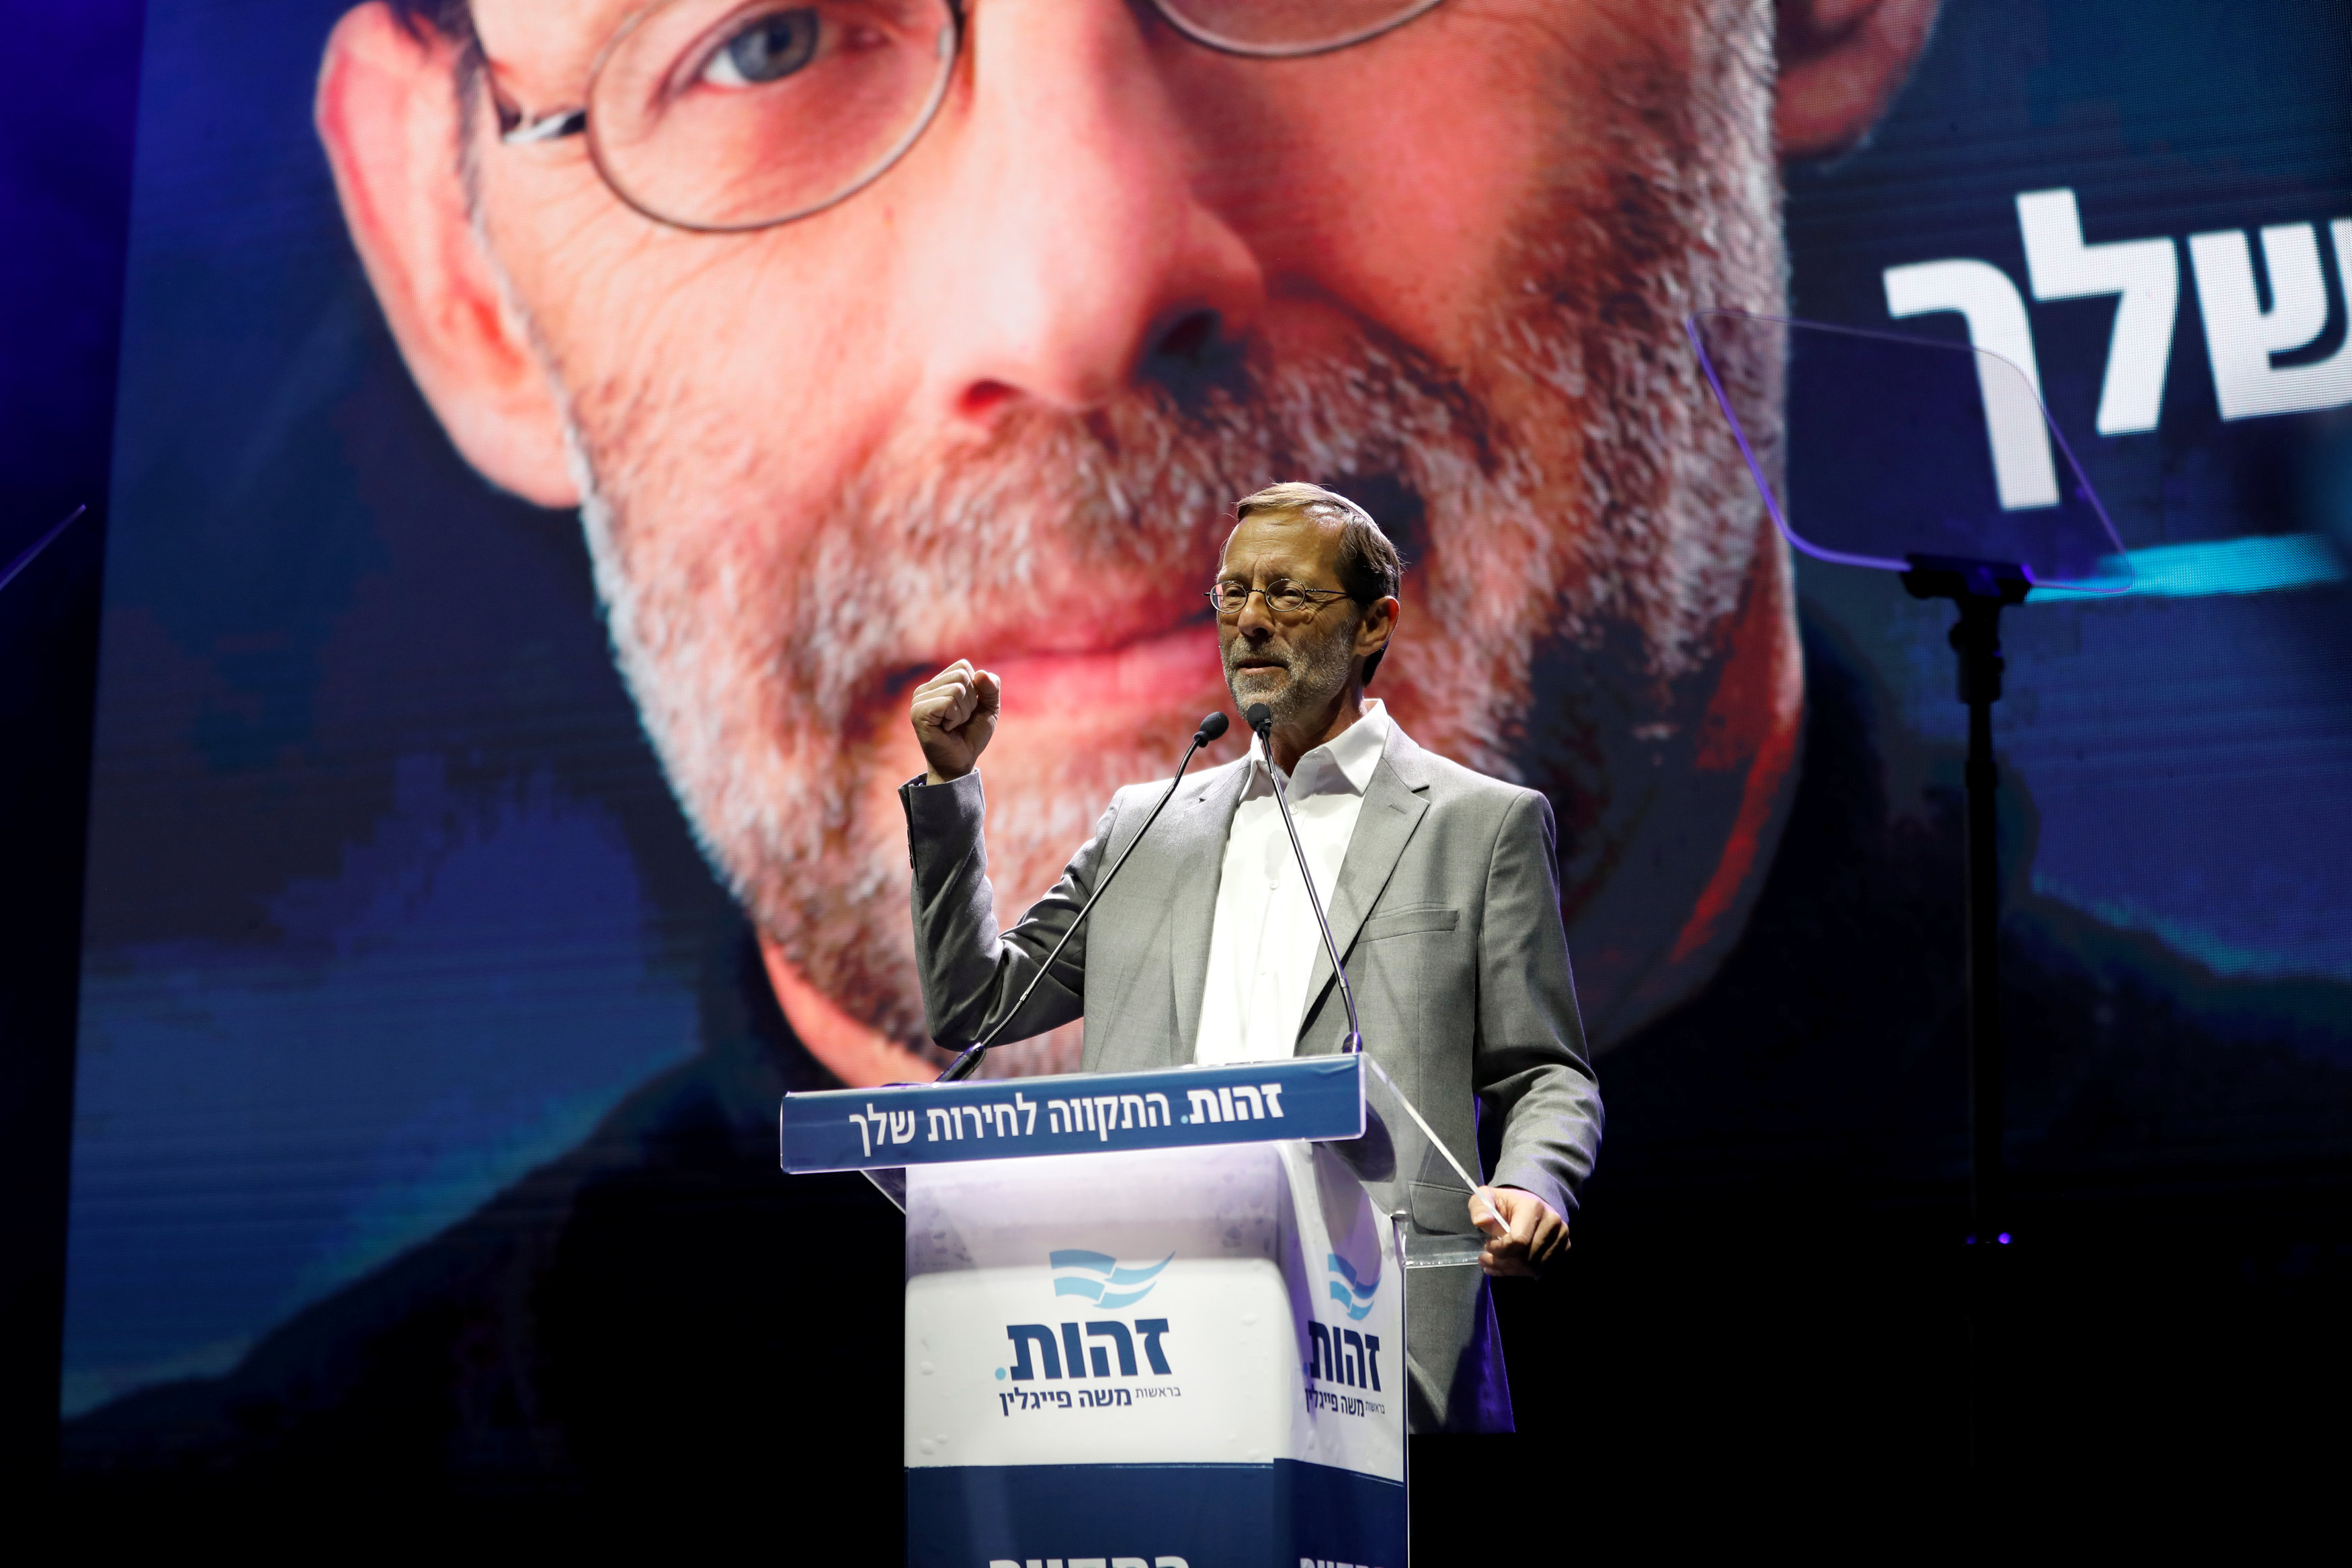 Moshe Feiglin at an election campaign event in Tel Aviv on 2 April 2019 (Reuters)